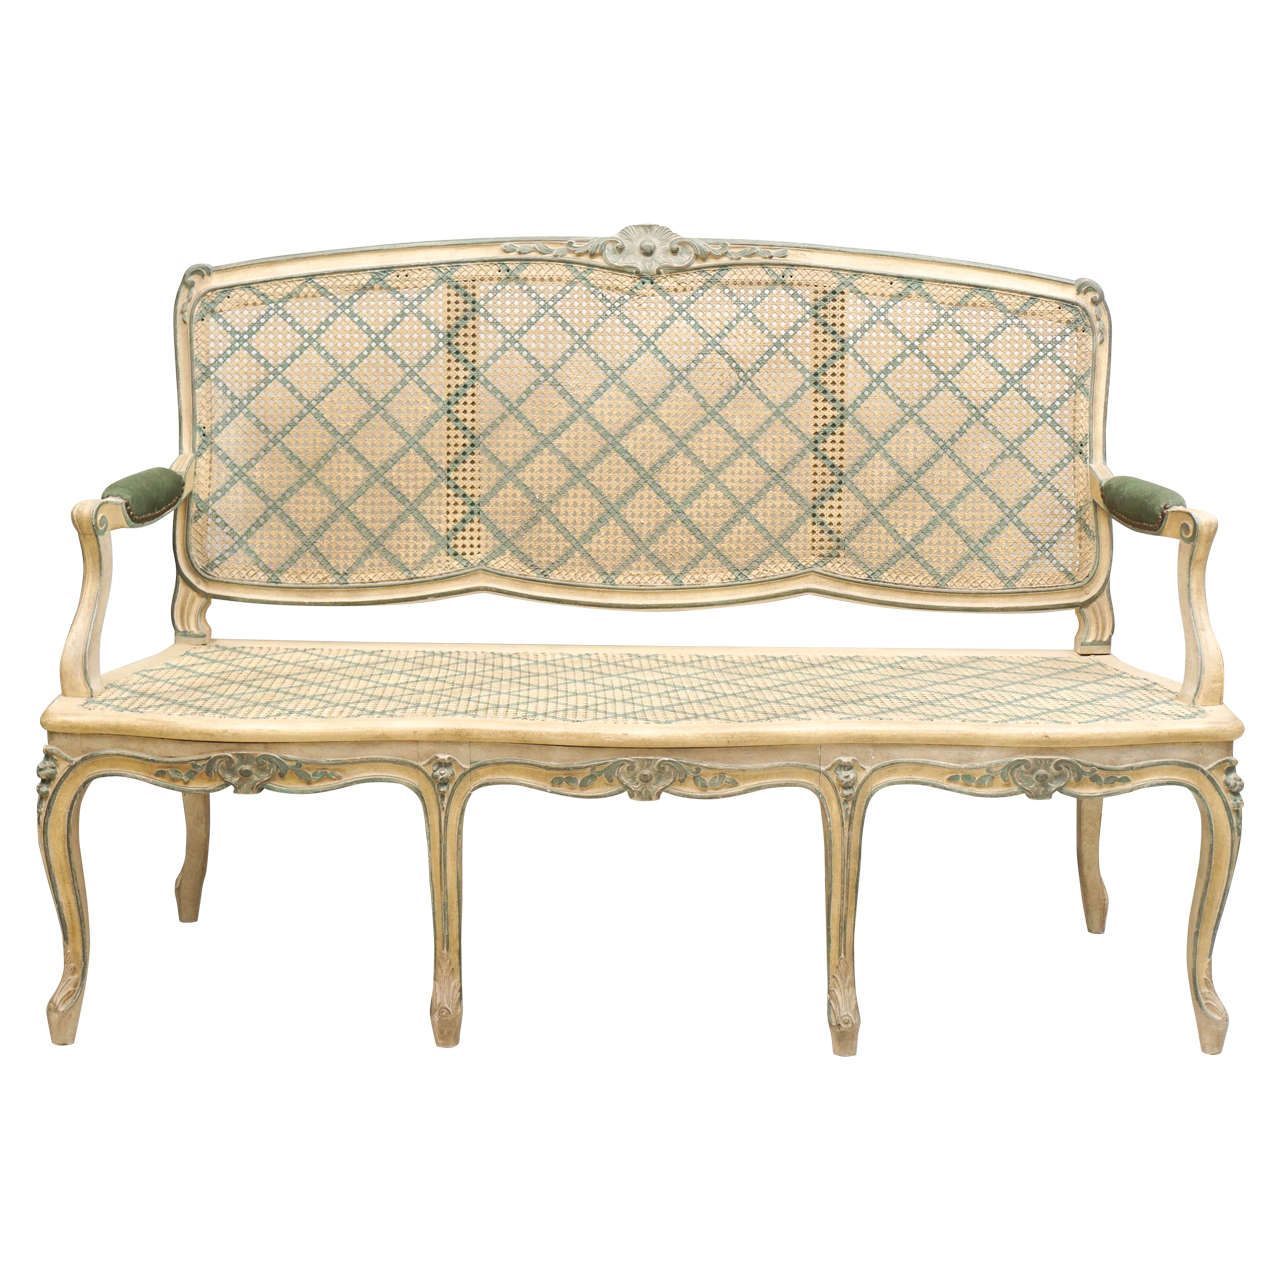 Early 20th Century Louis XV Style Finely Carved Wood and Caned Settee